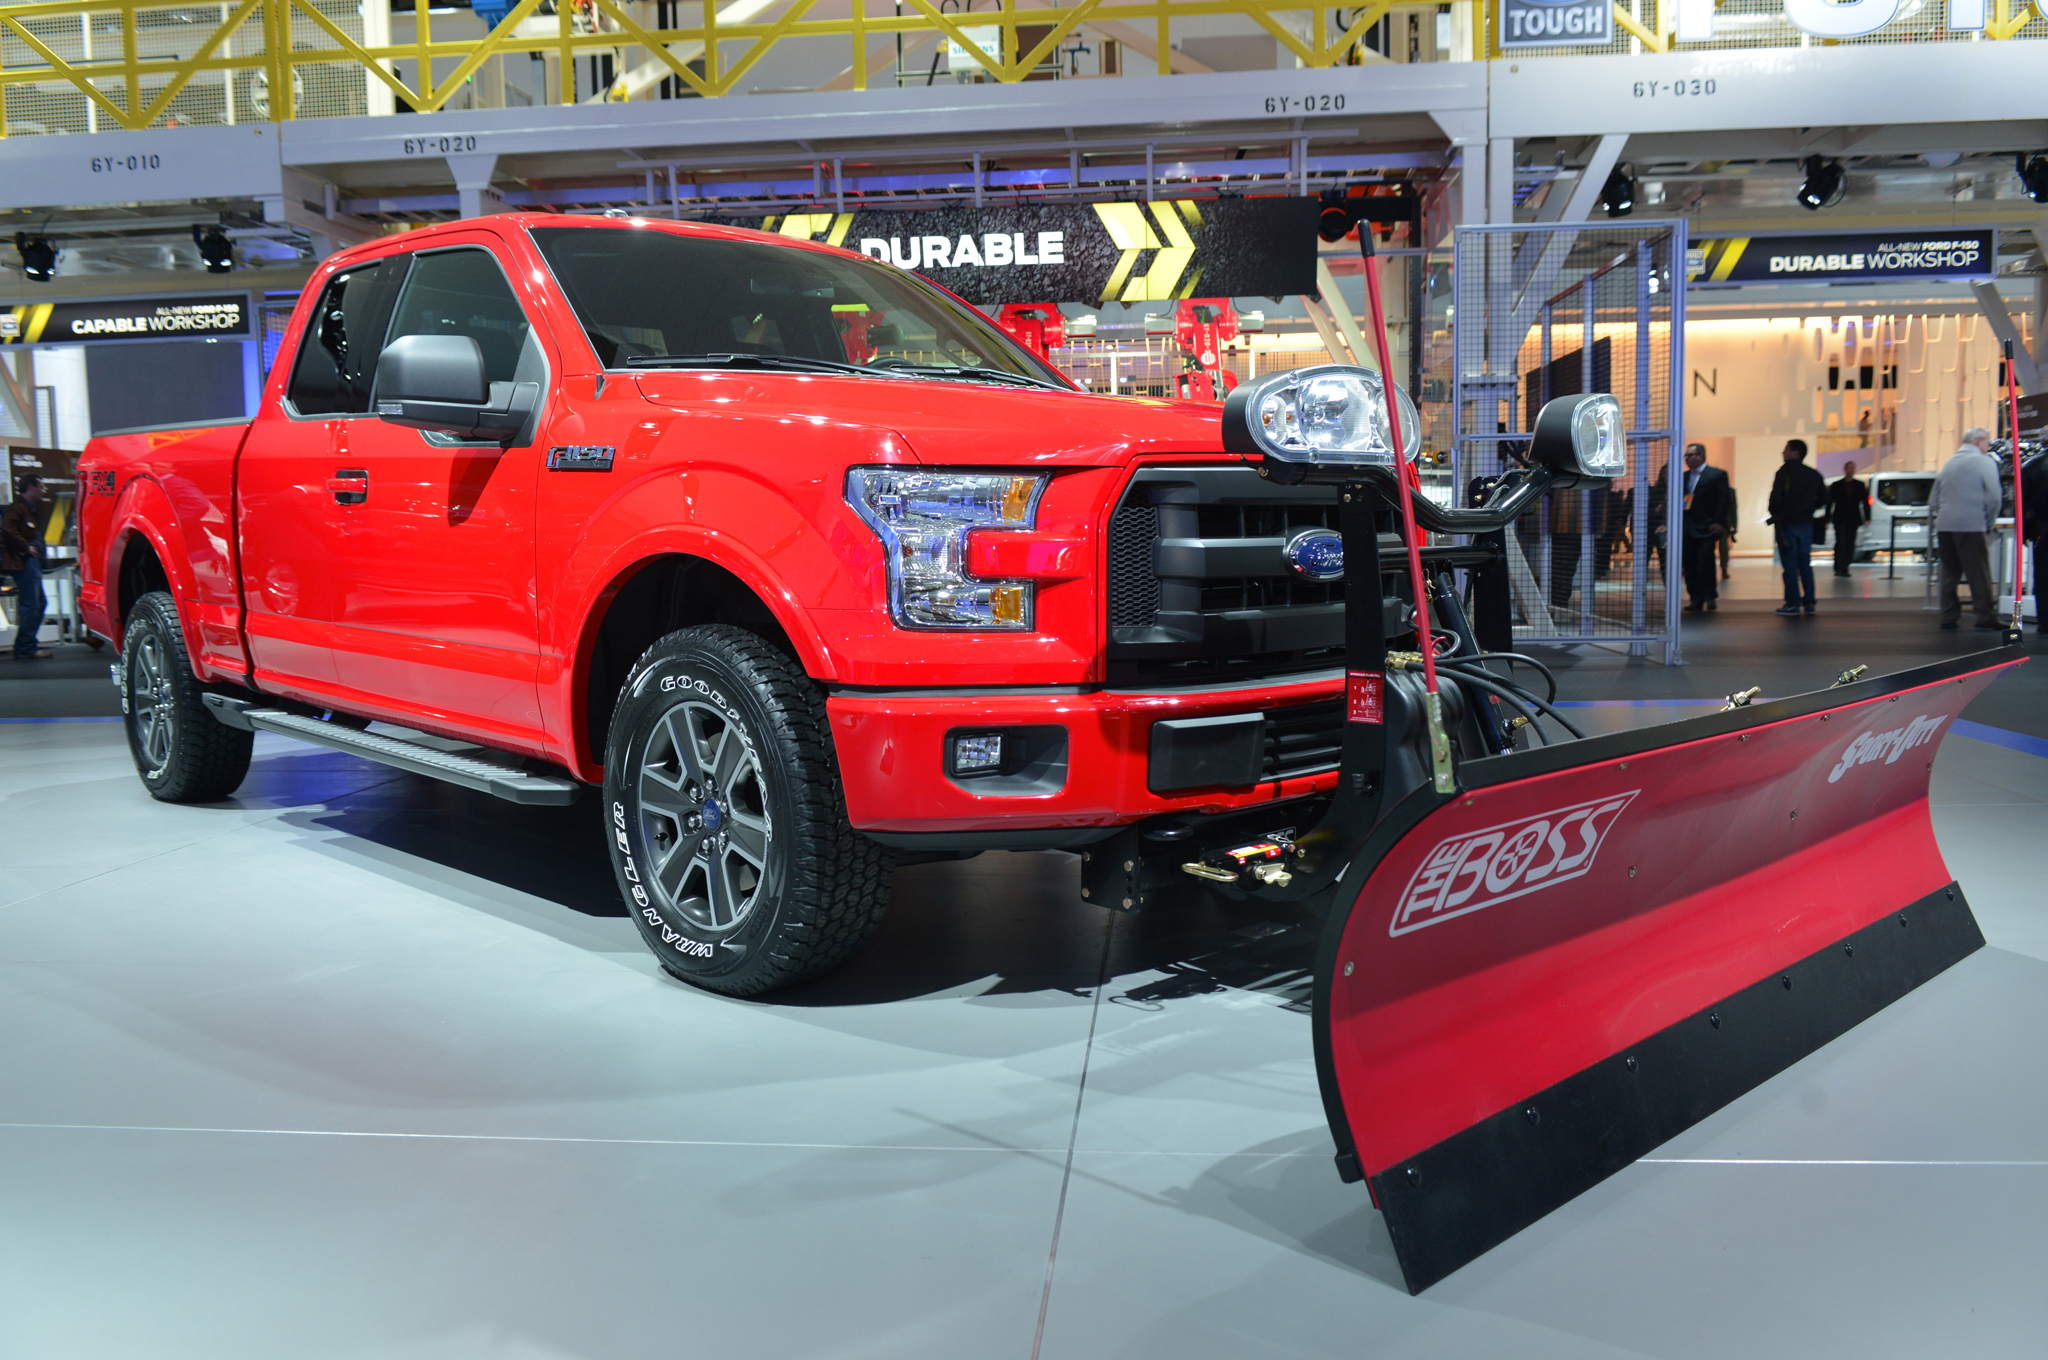 2015 Ford F-150 Snow Plow Prep Option is a Light-Duty First